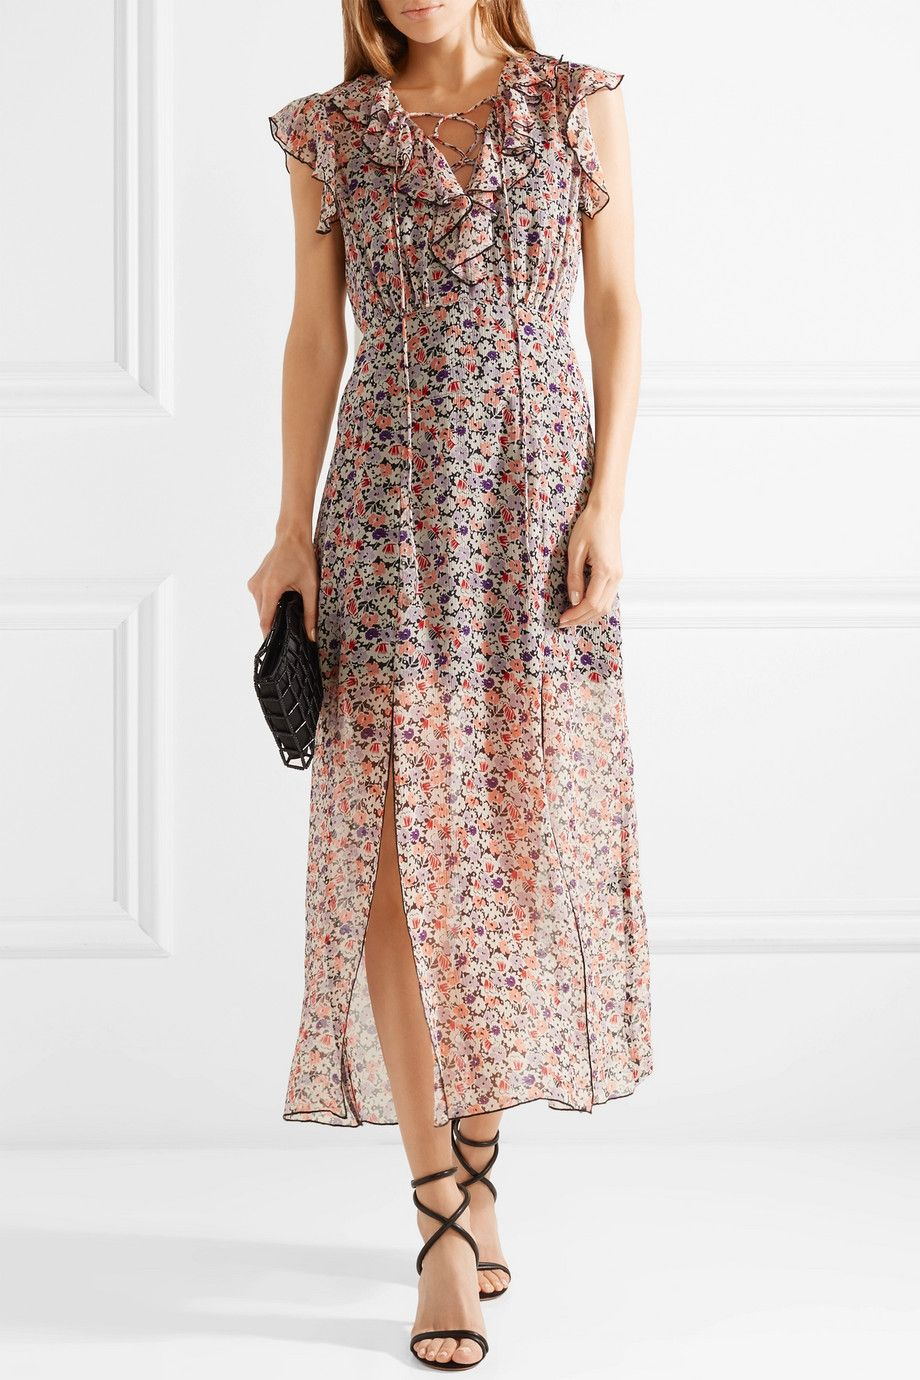 Scattered Flowers Ruffled Floral-print Silk-chiffon Midi Dress - Pink Anna Sui Prices Cheap Price High Quality Buy Online Factory Outlet Hard Wearing zNpOJRV